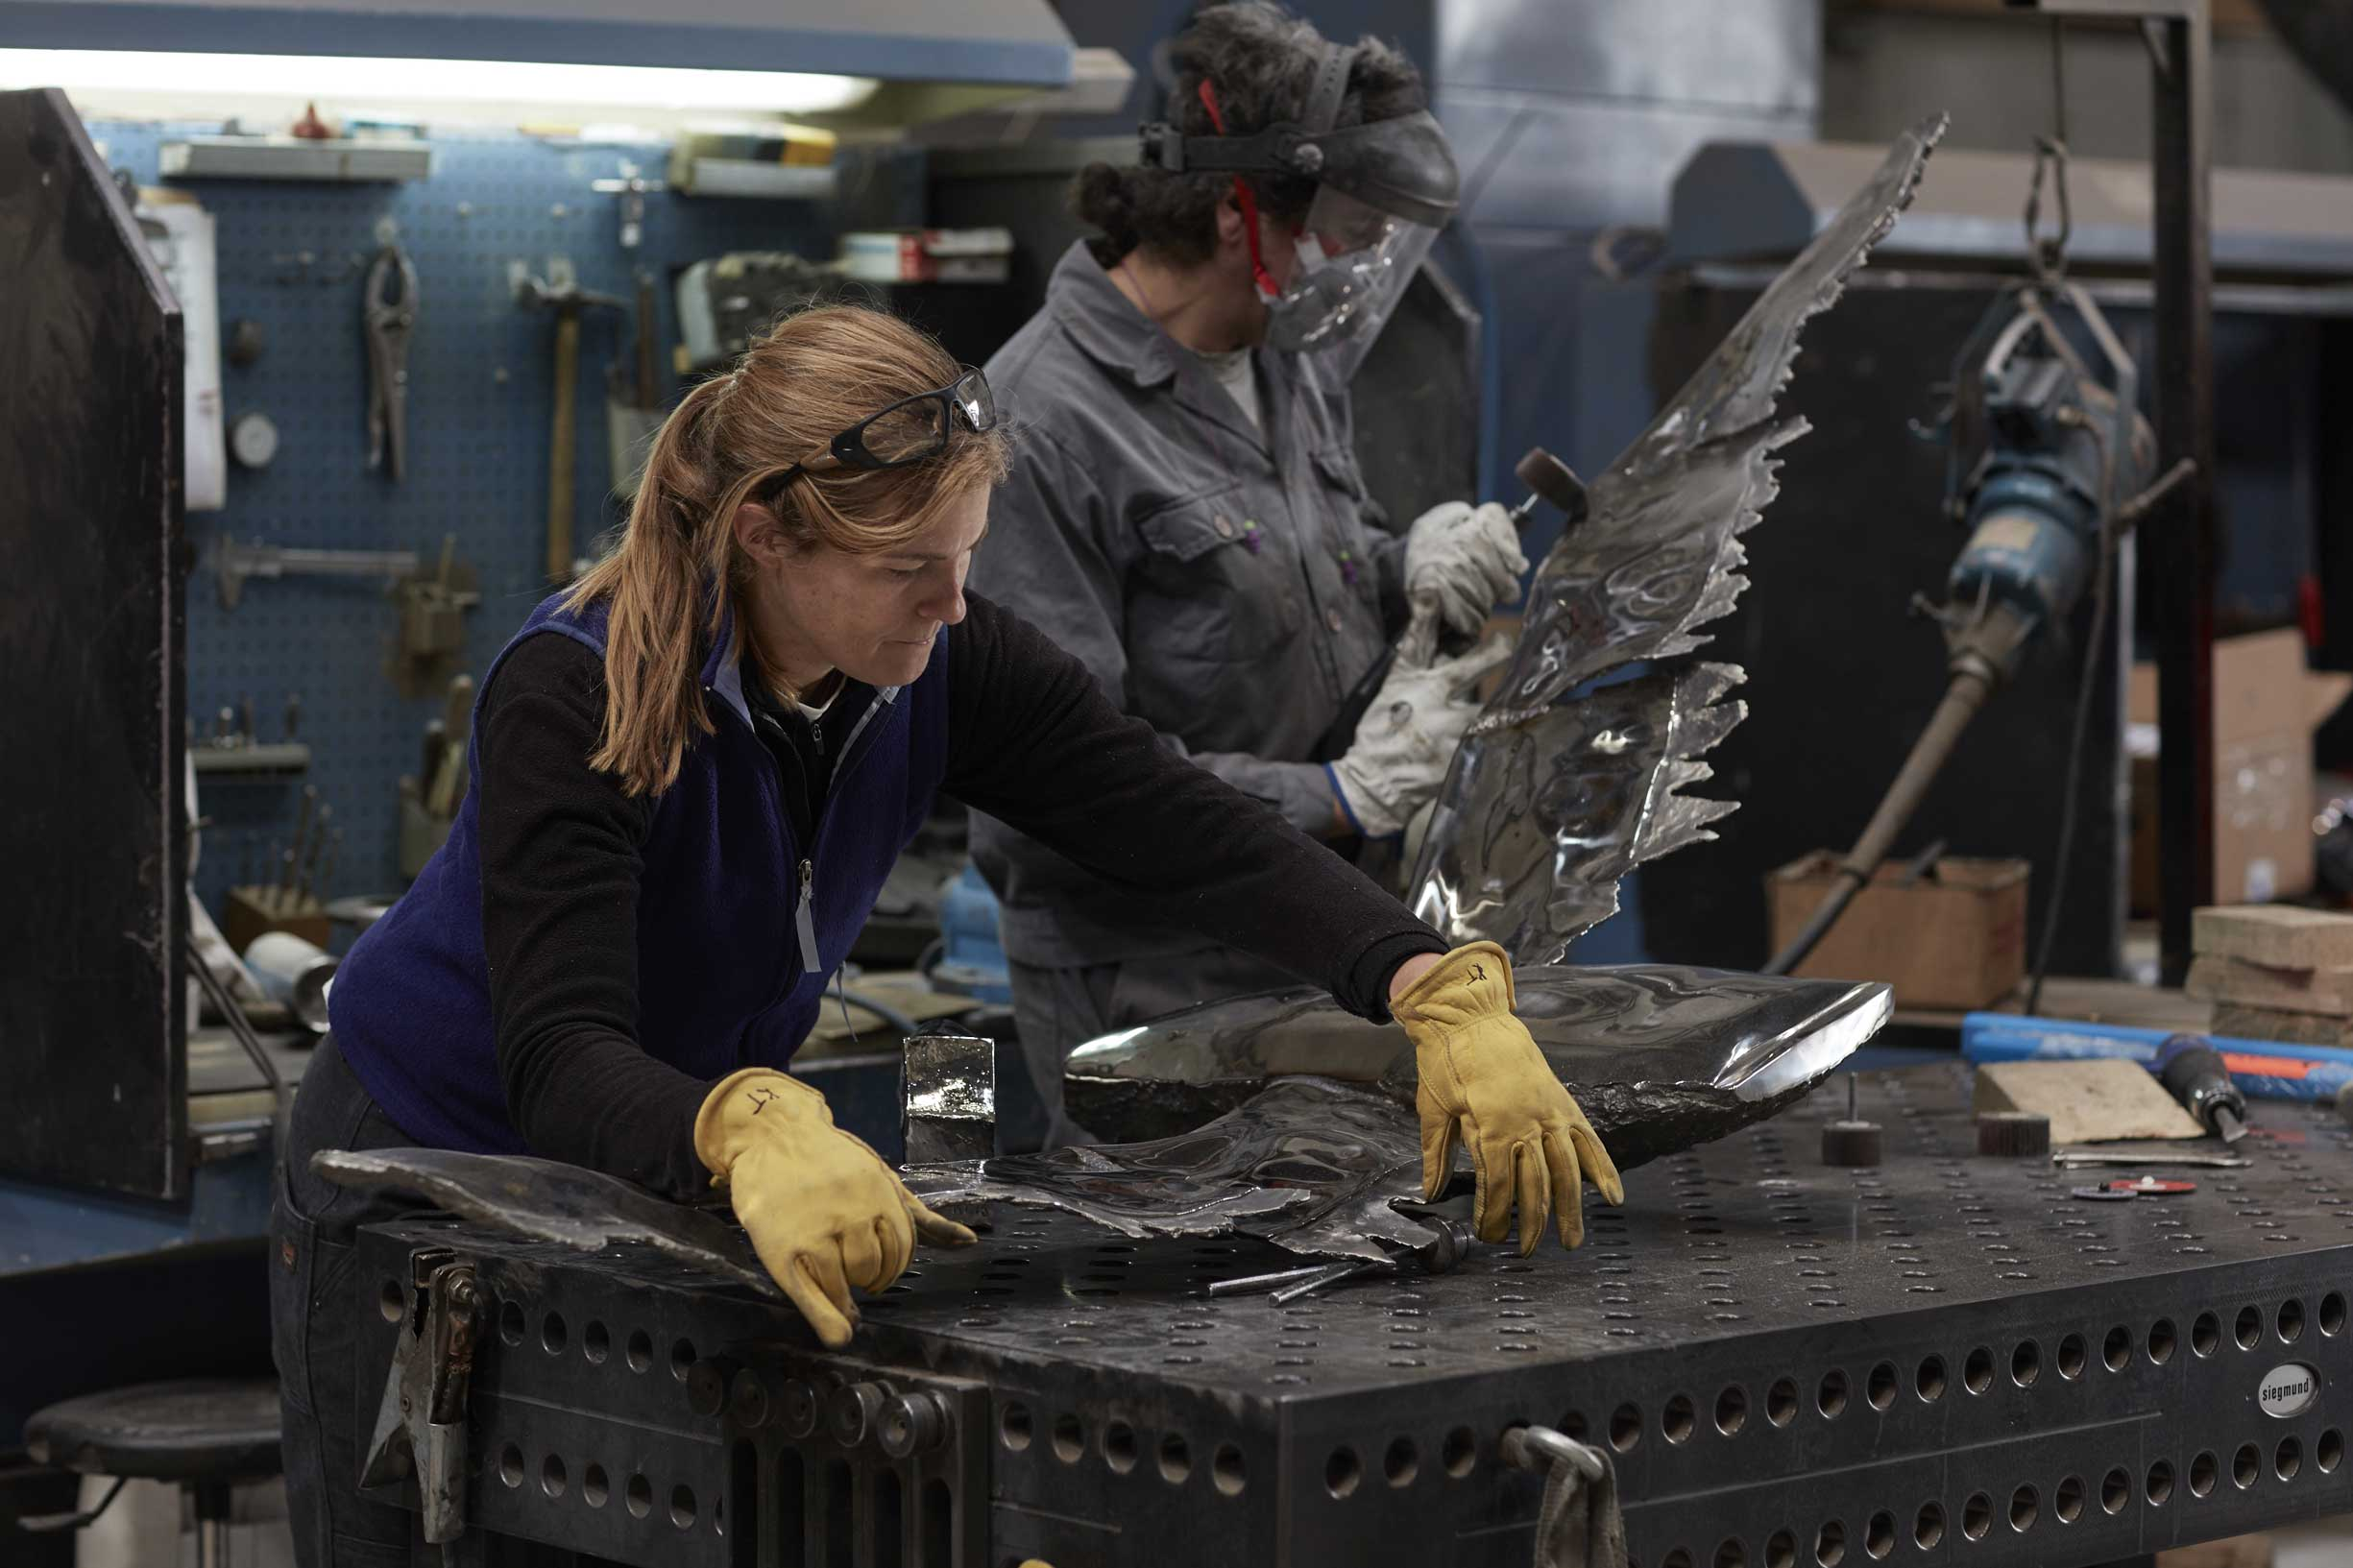 Katherine Taylor working in Alfa Arte. Sculptural project: #PelicansFlyTogether, in stainless steel, installed in St. Paul